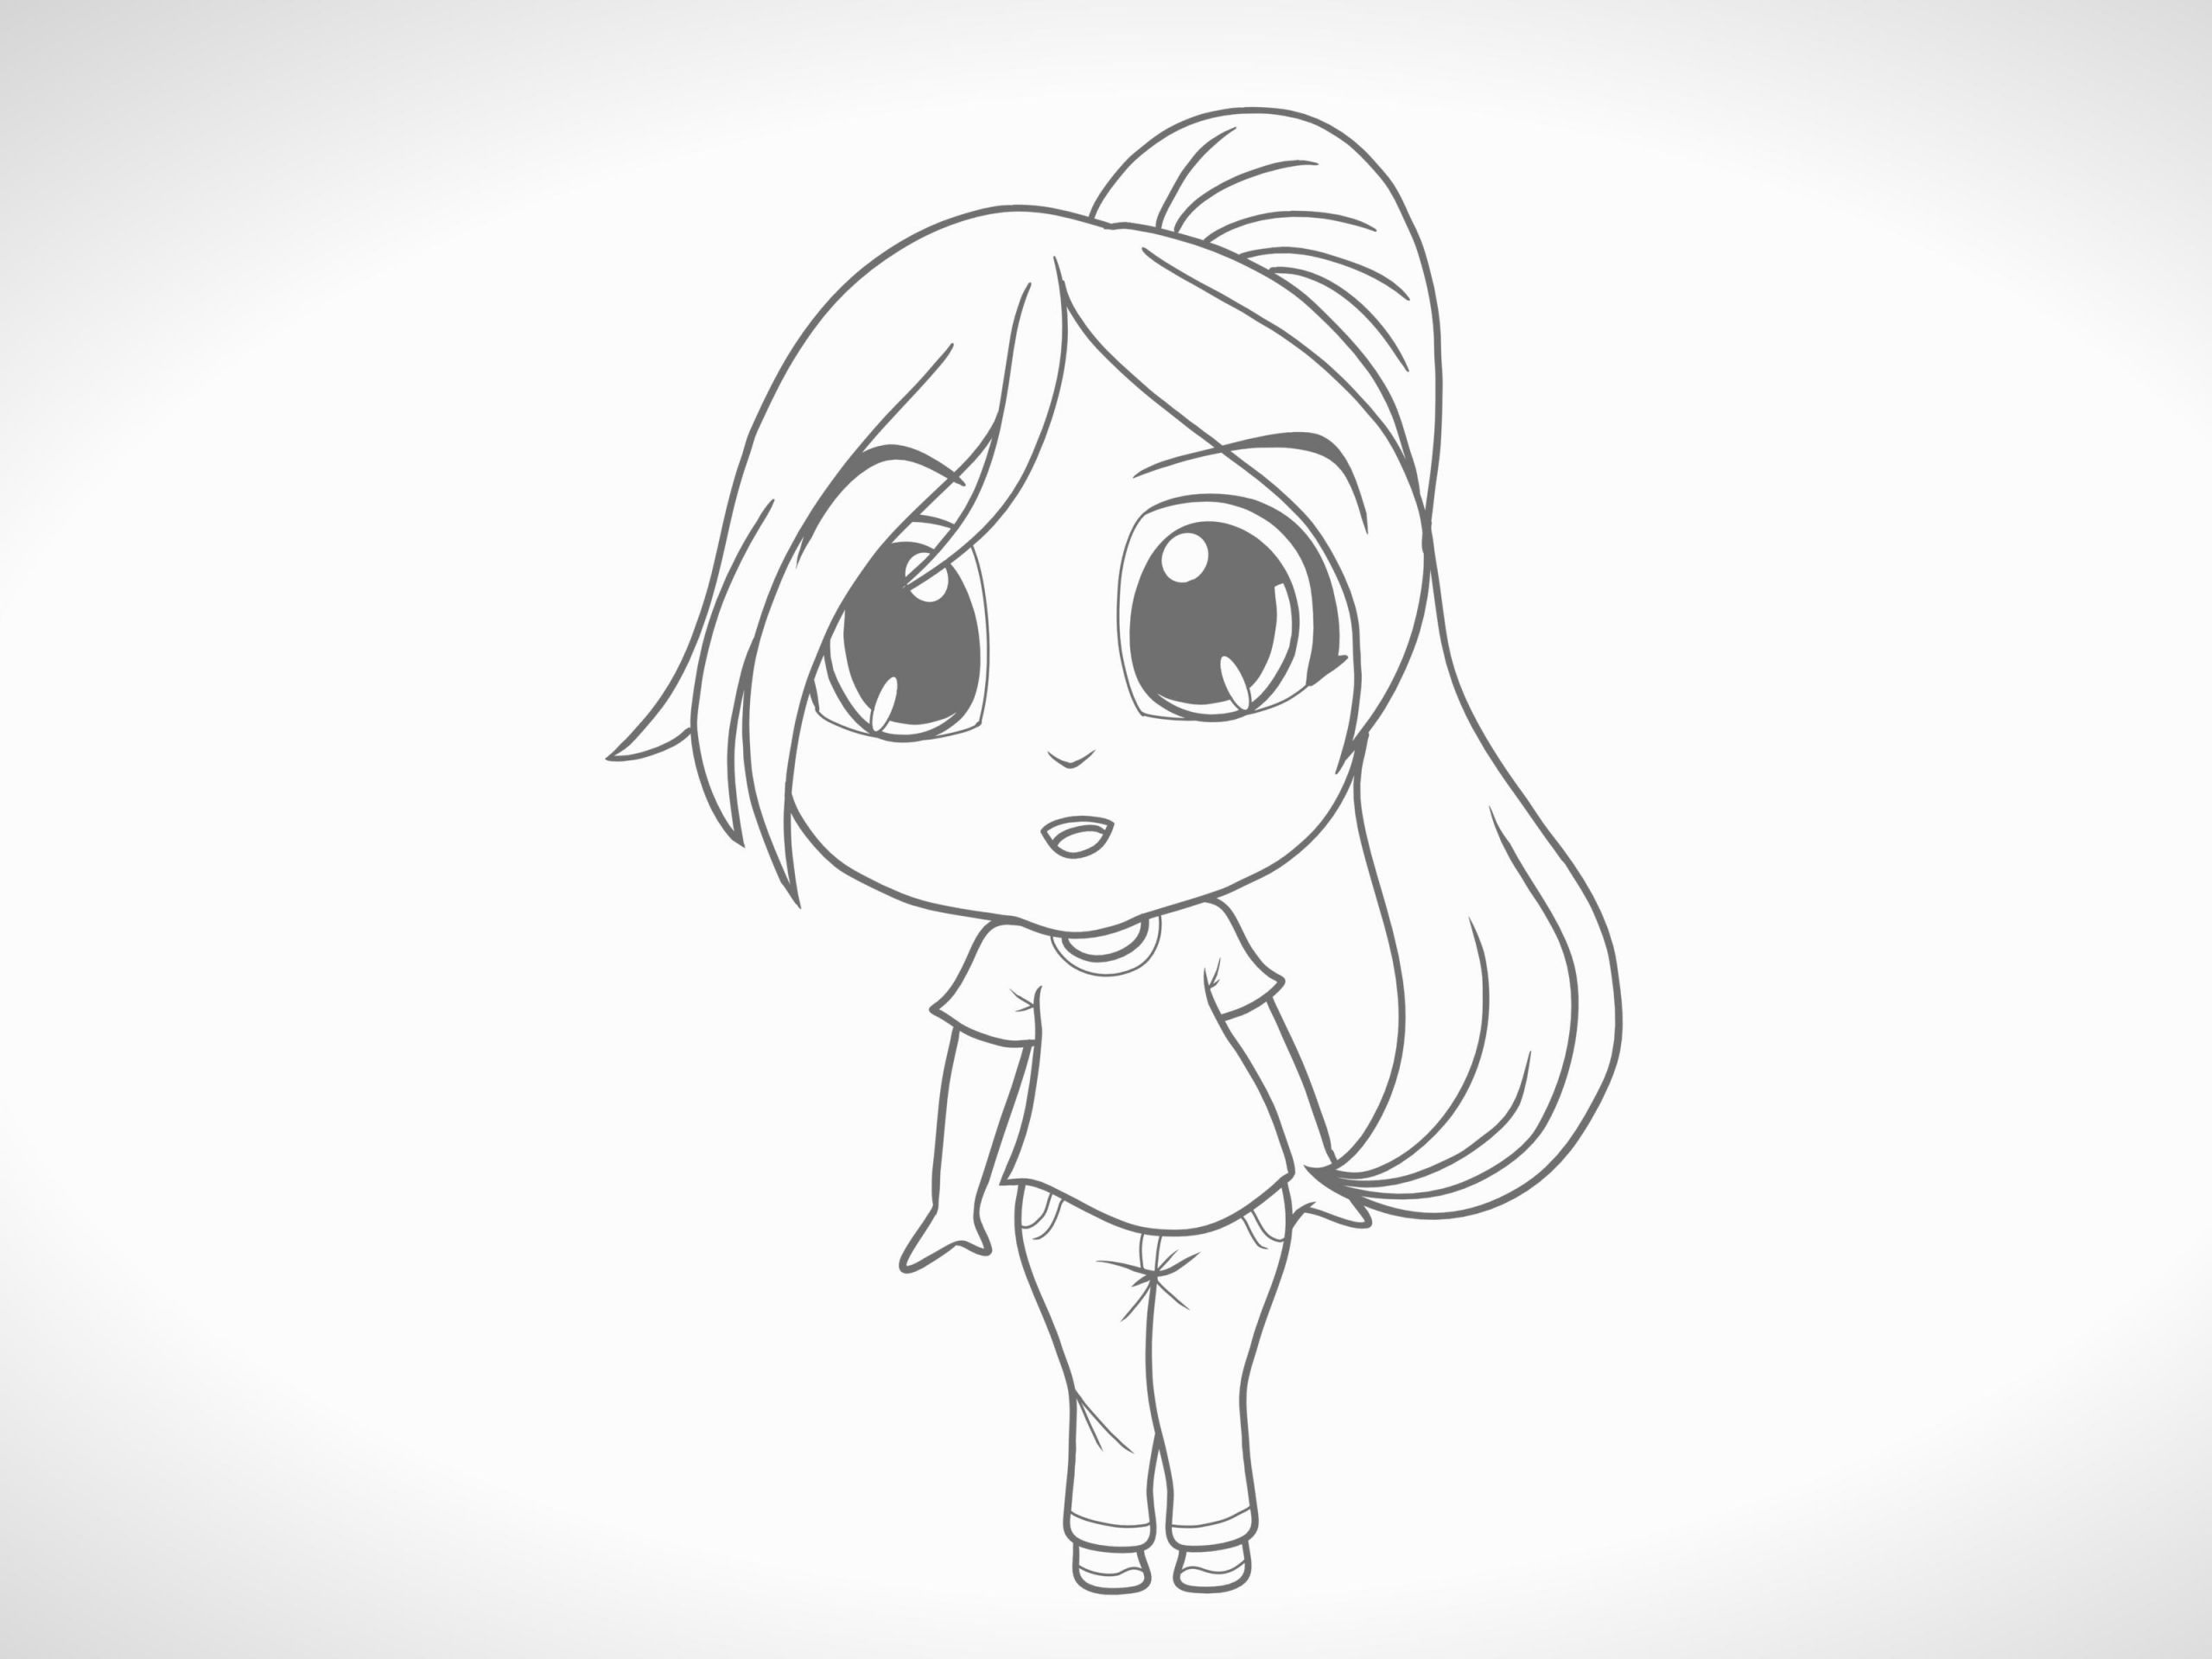 draw a chibi character step 12 version 3 jpg